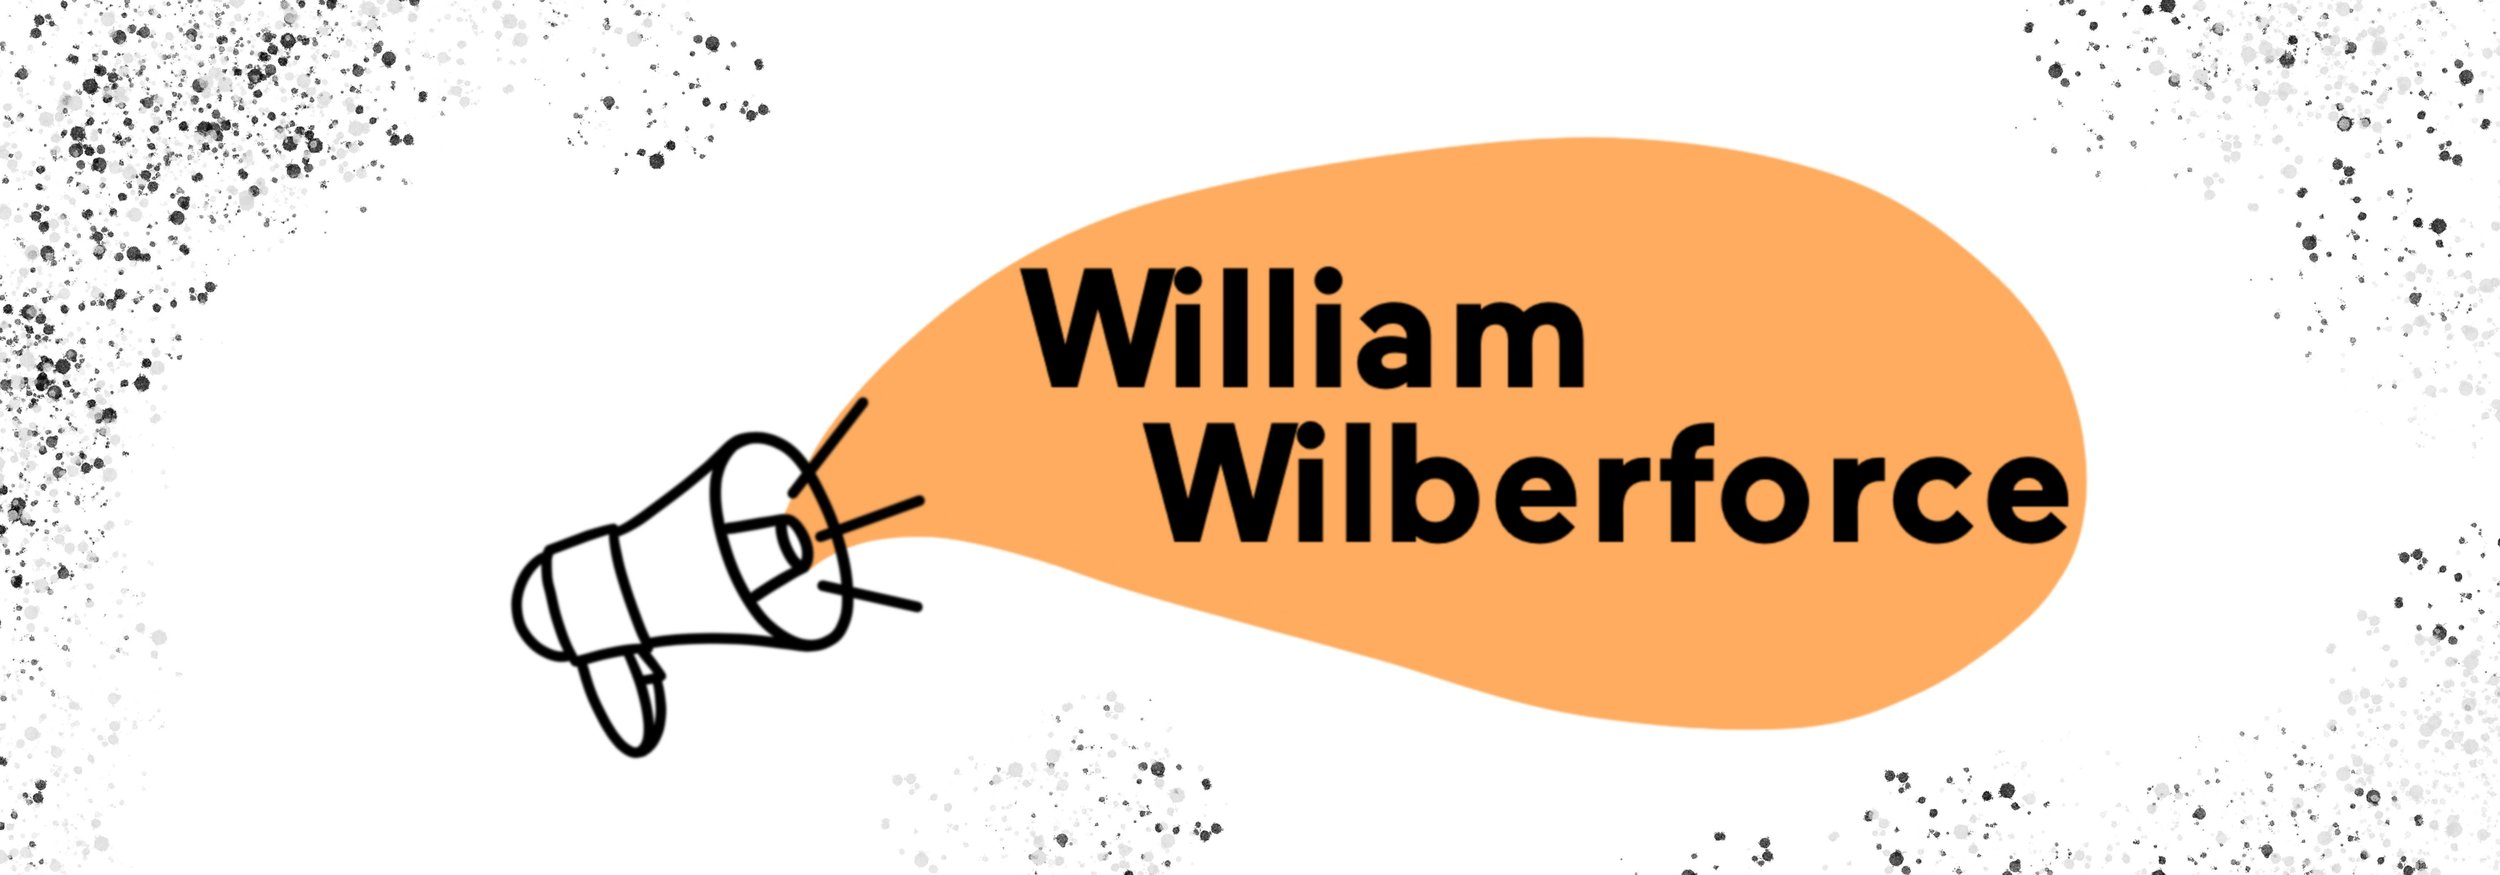 William_Wilberforce_Website_Banner.jpg